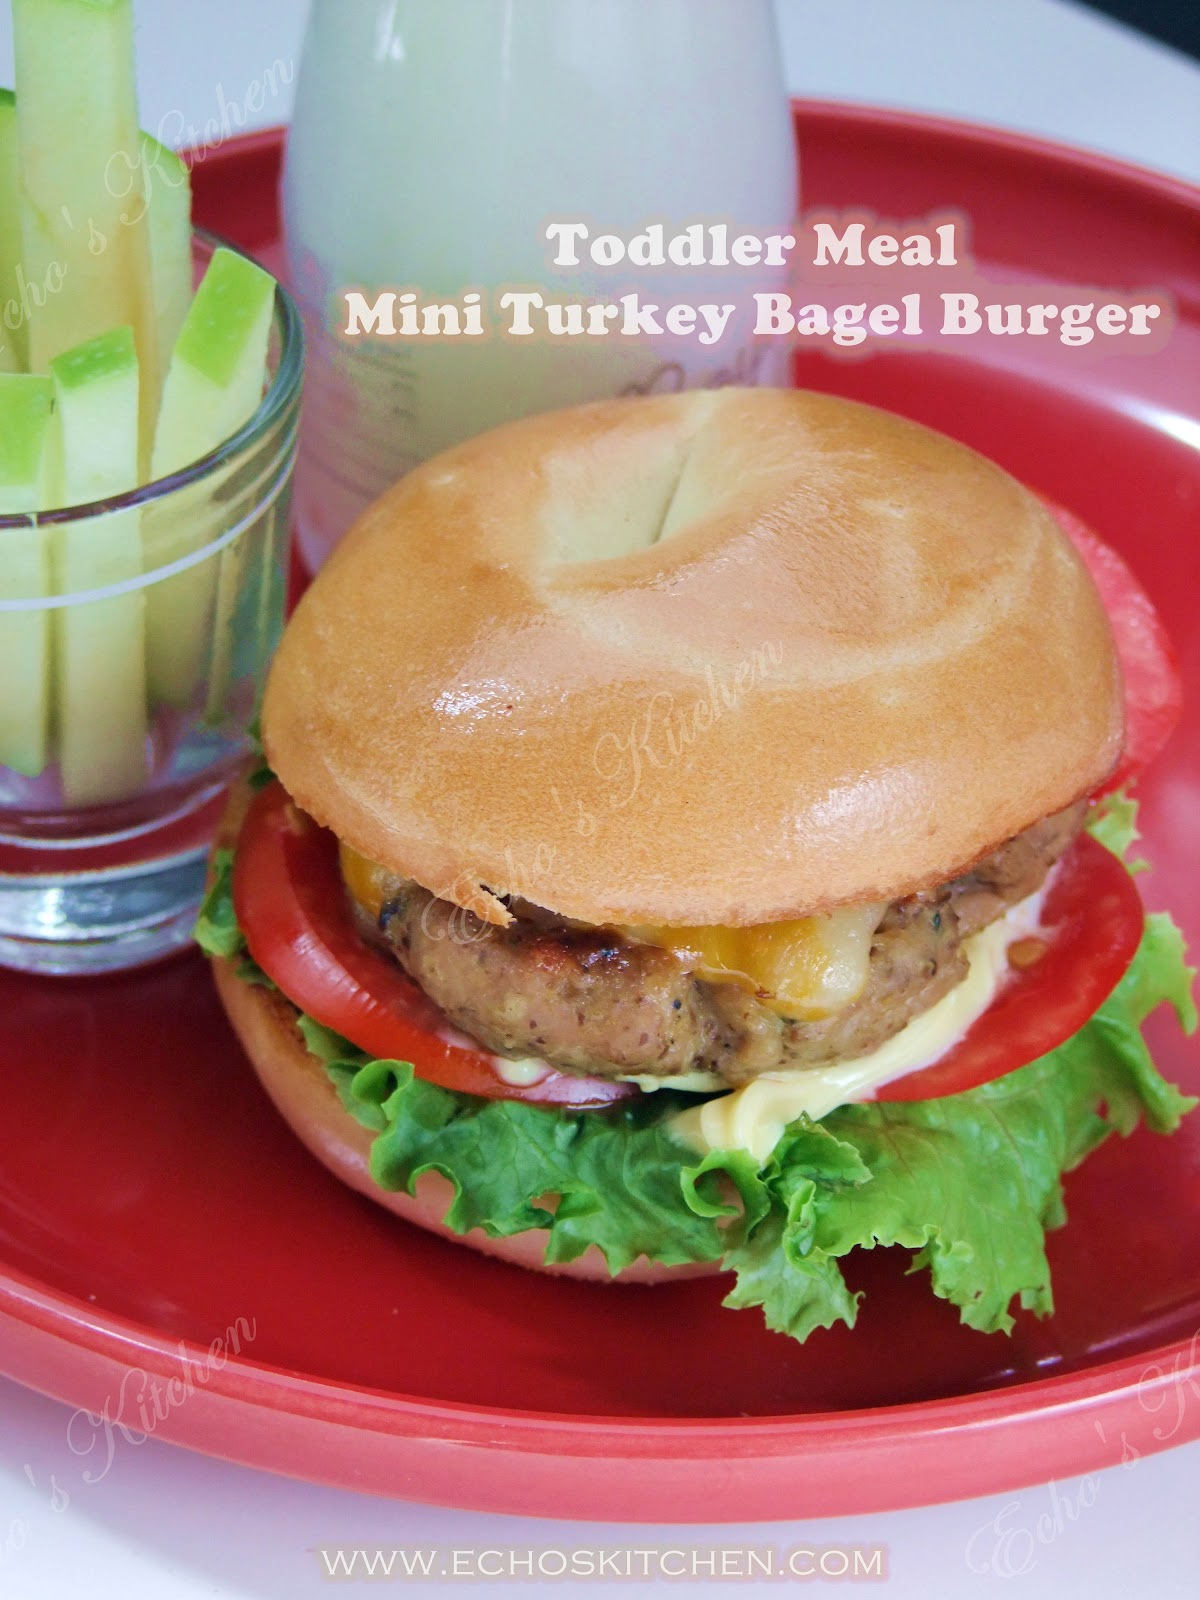 ... memories -- Echo's Kitchen: Toddler Meal -- Mini Turkey Bagel Burger